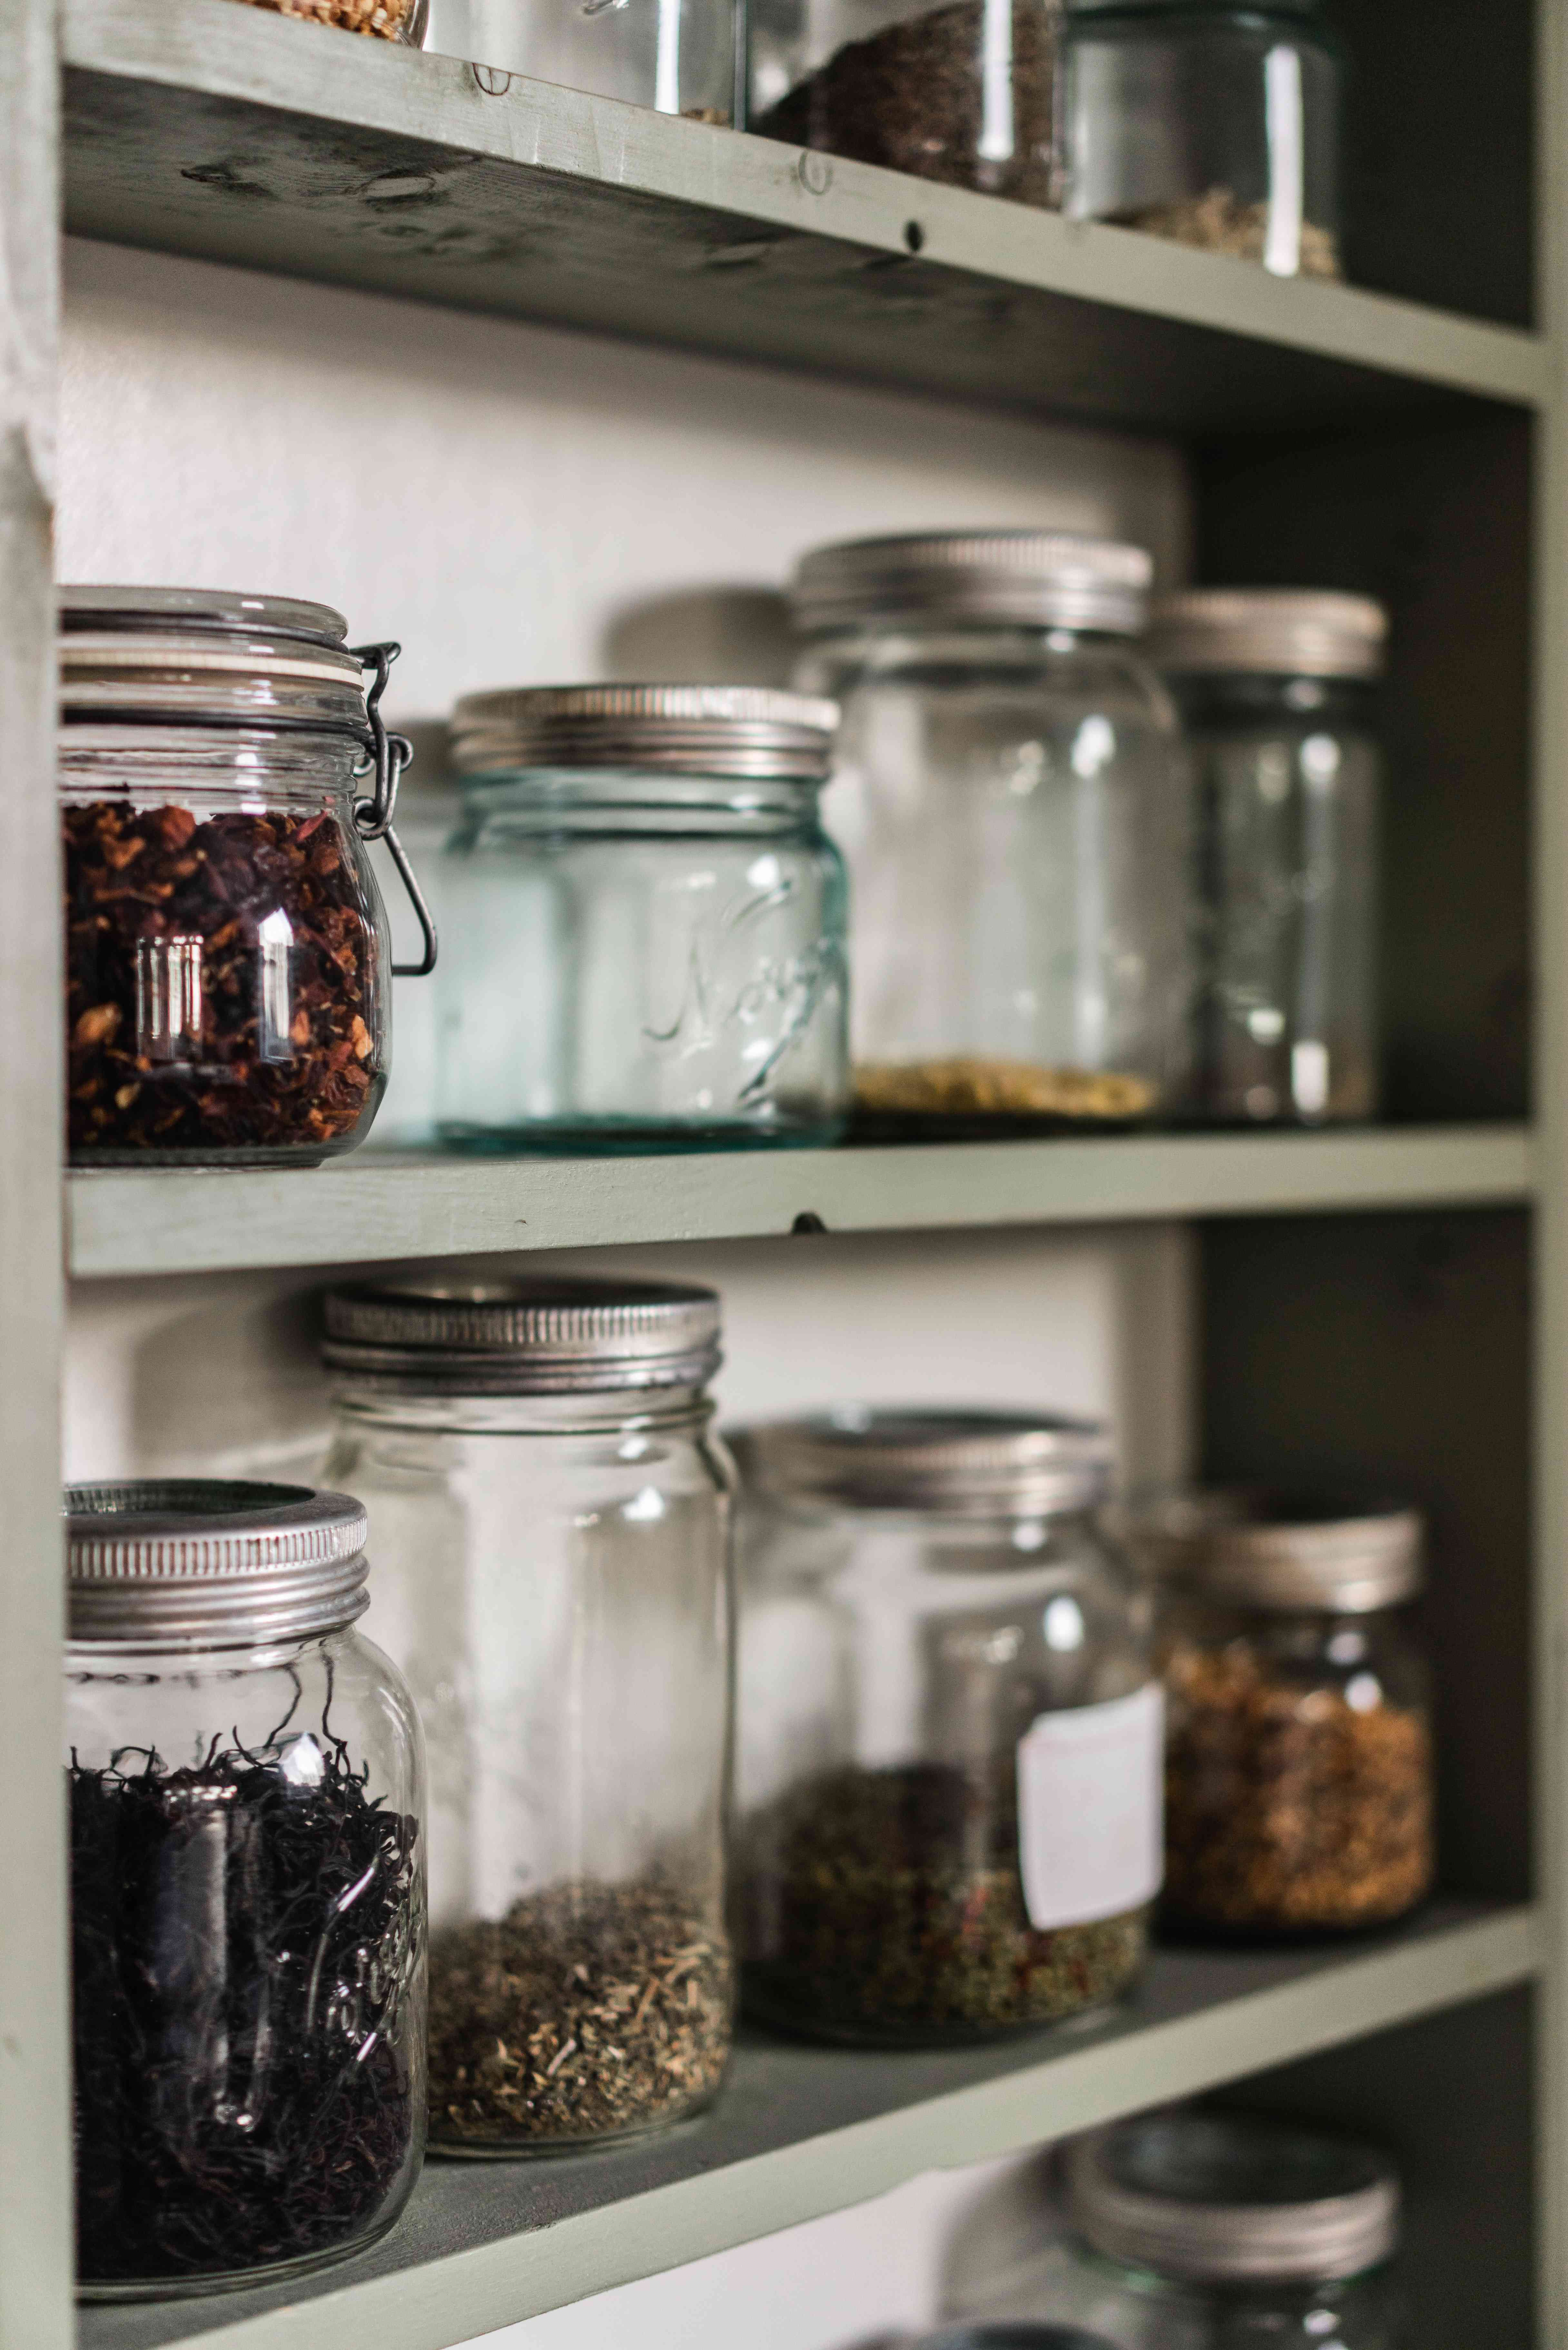 Pantry cabinets with spices in glass jars